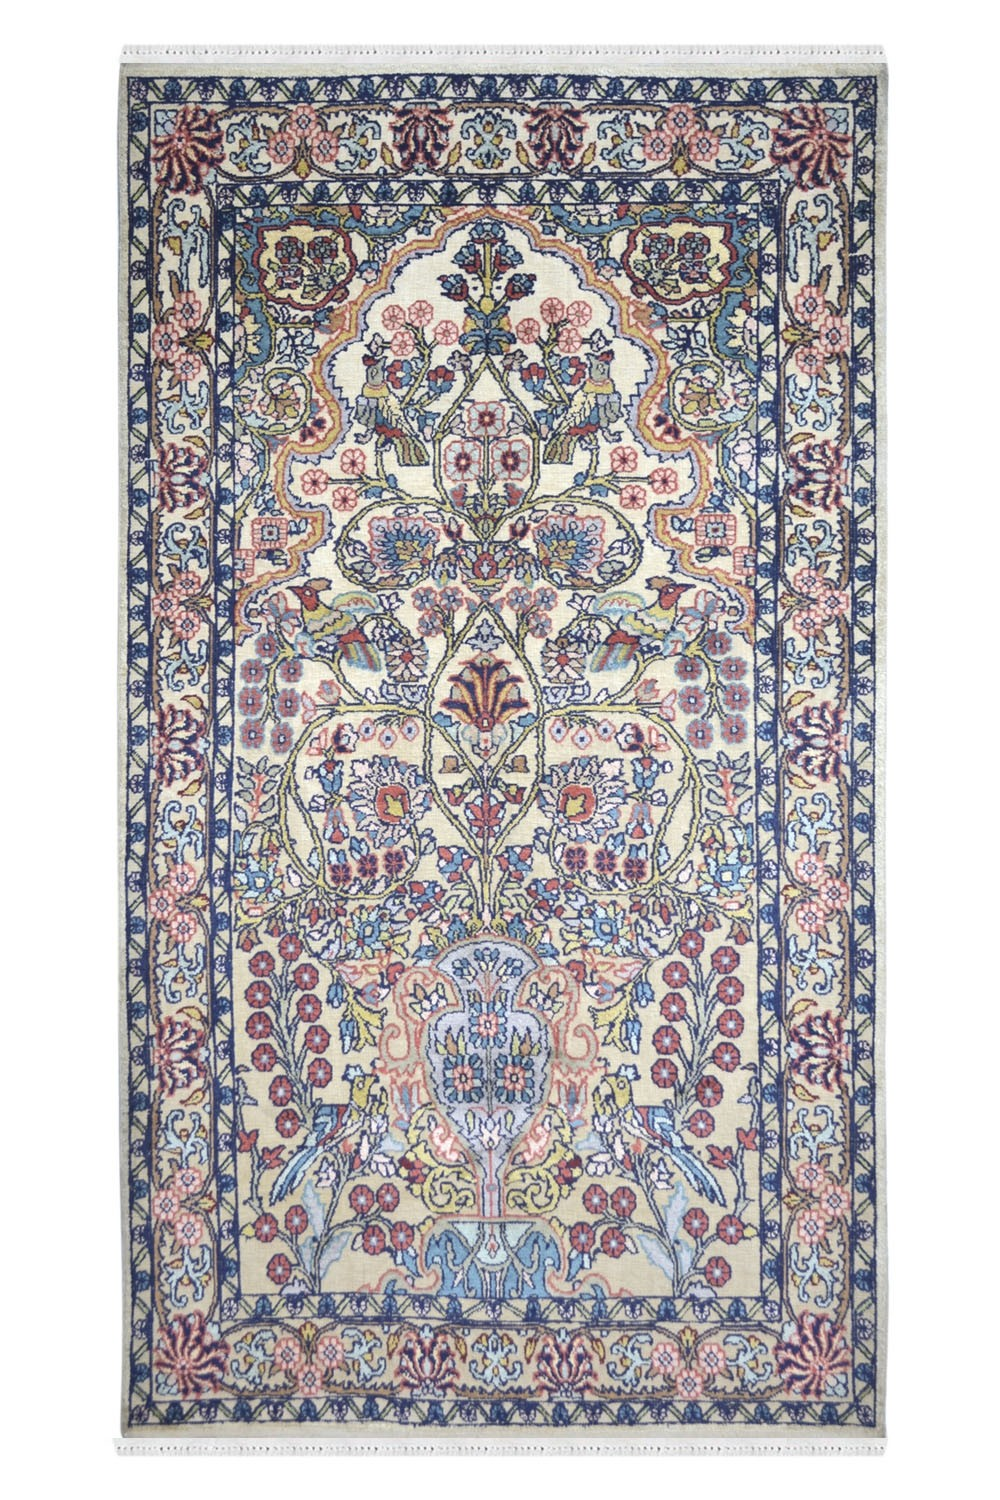 Chinese Tree of Life Silk Rug